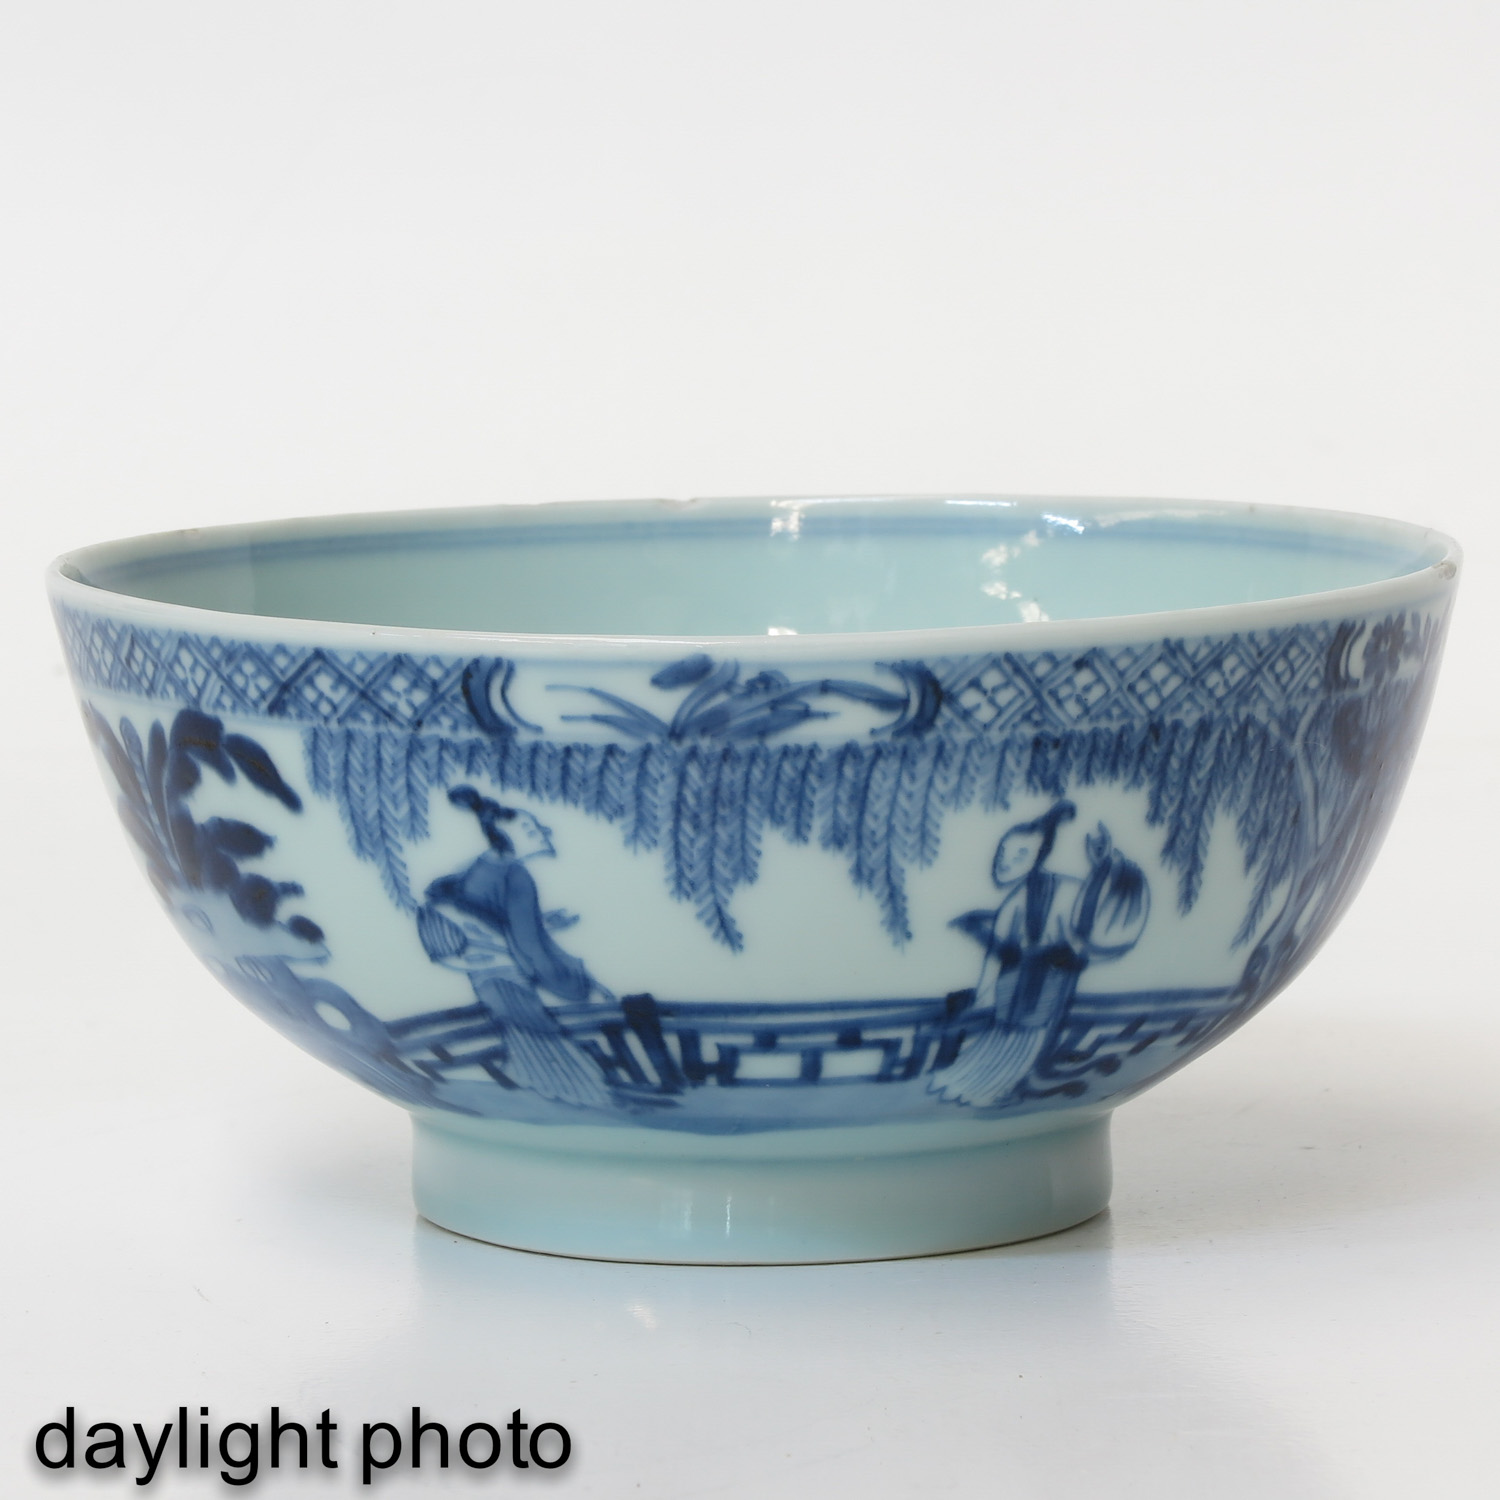 A Series of 3 Blue and White Bowls - Image 7 of 10